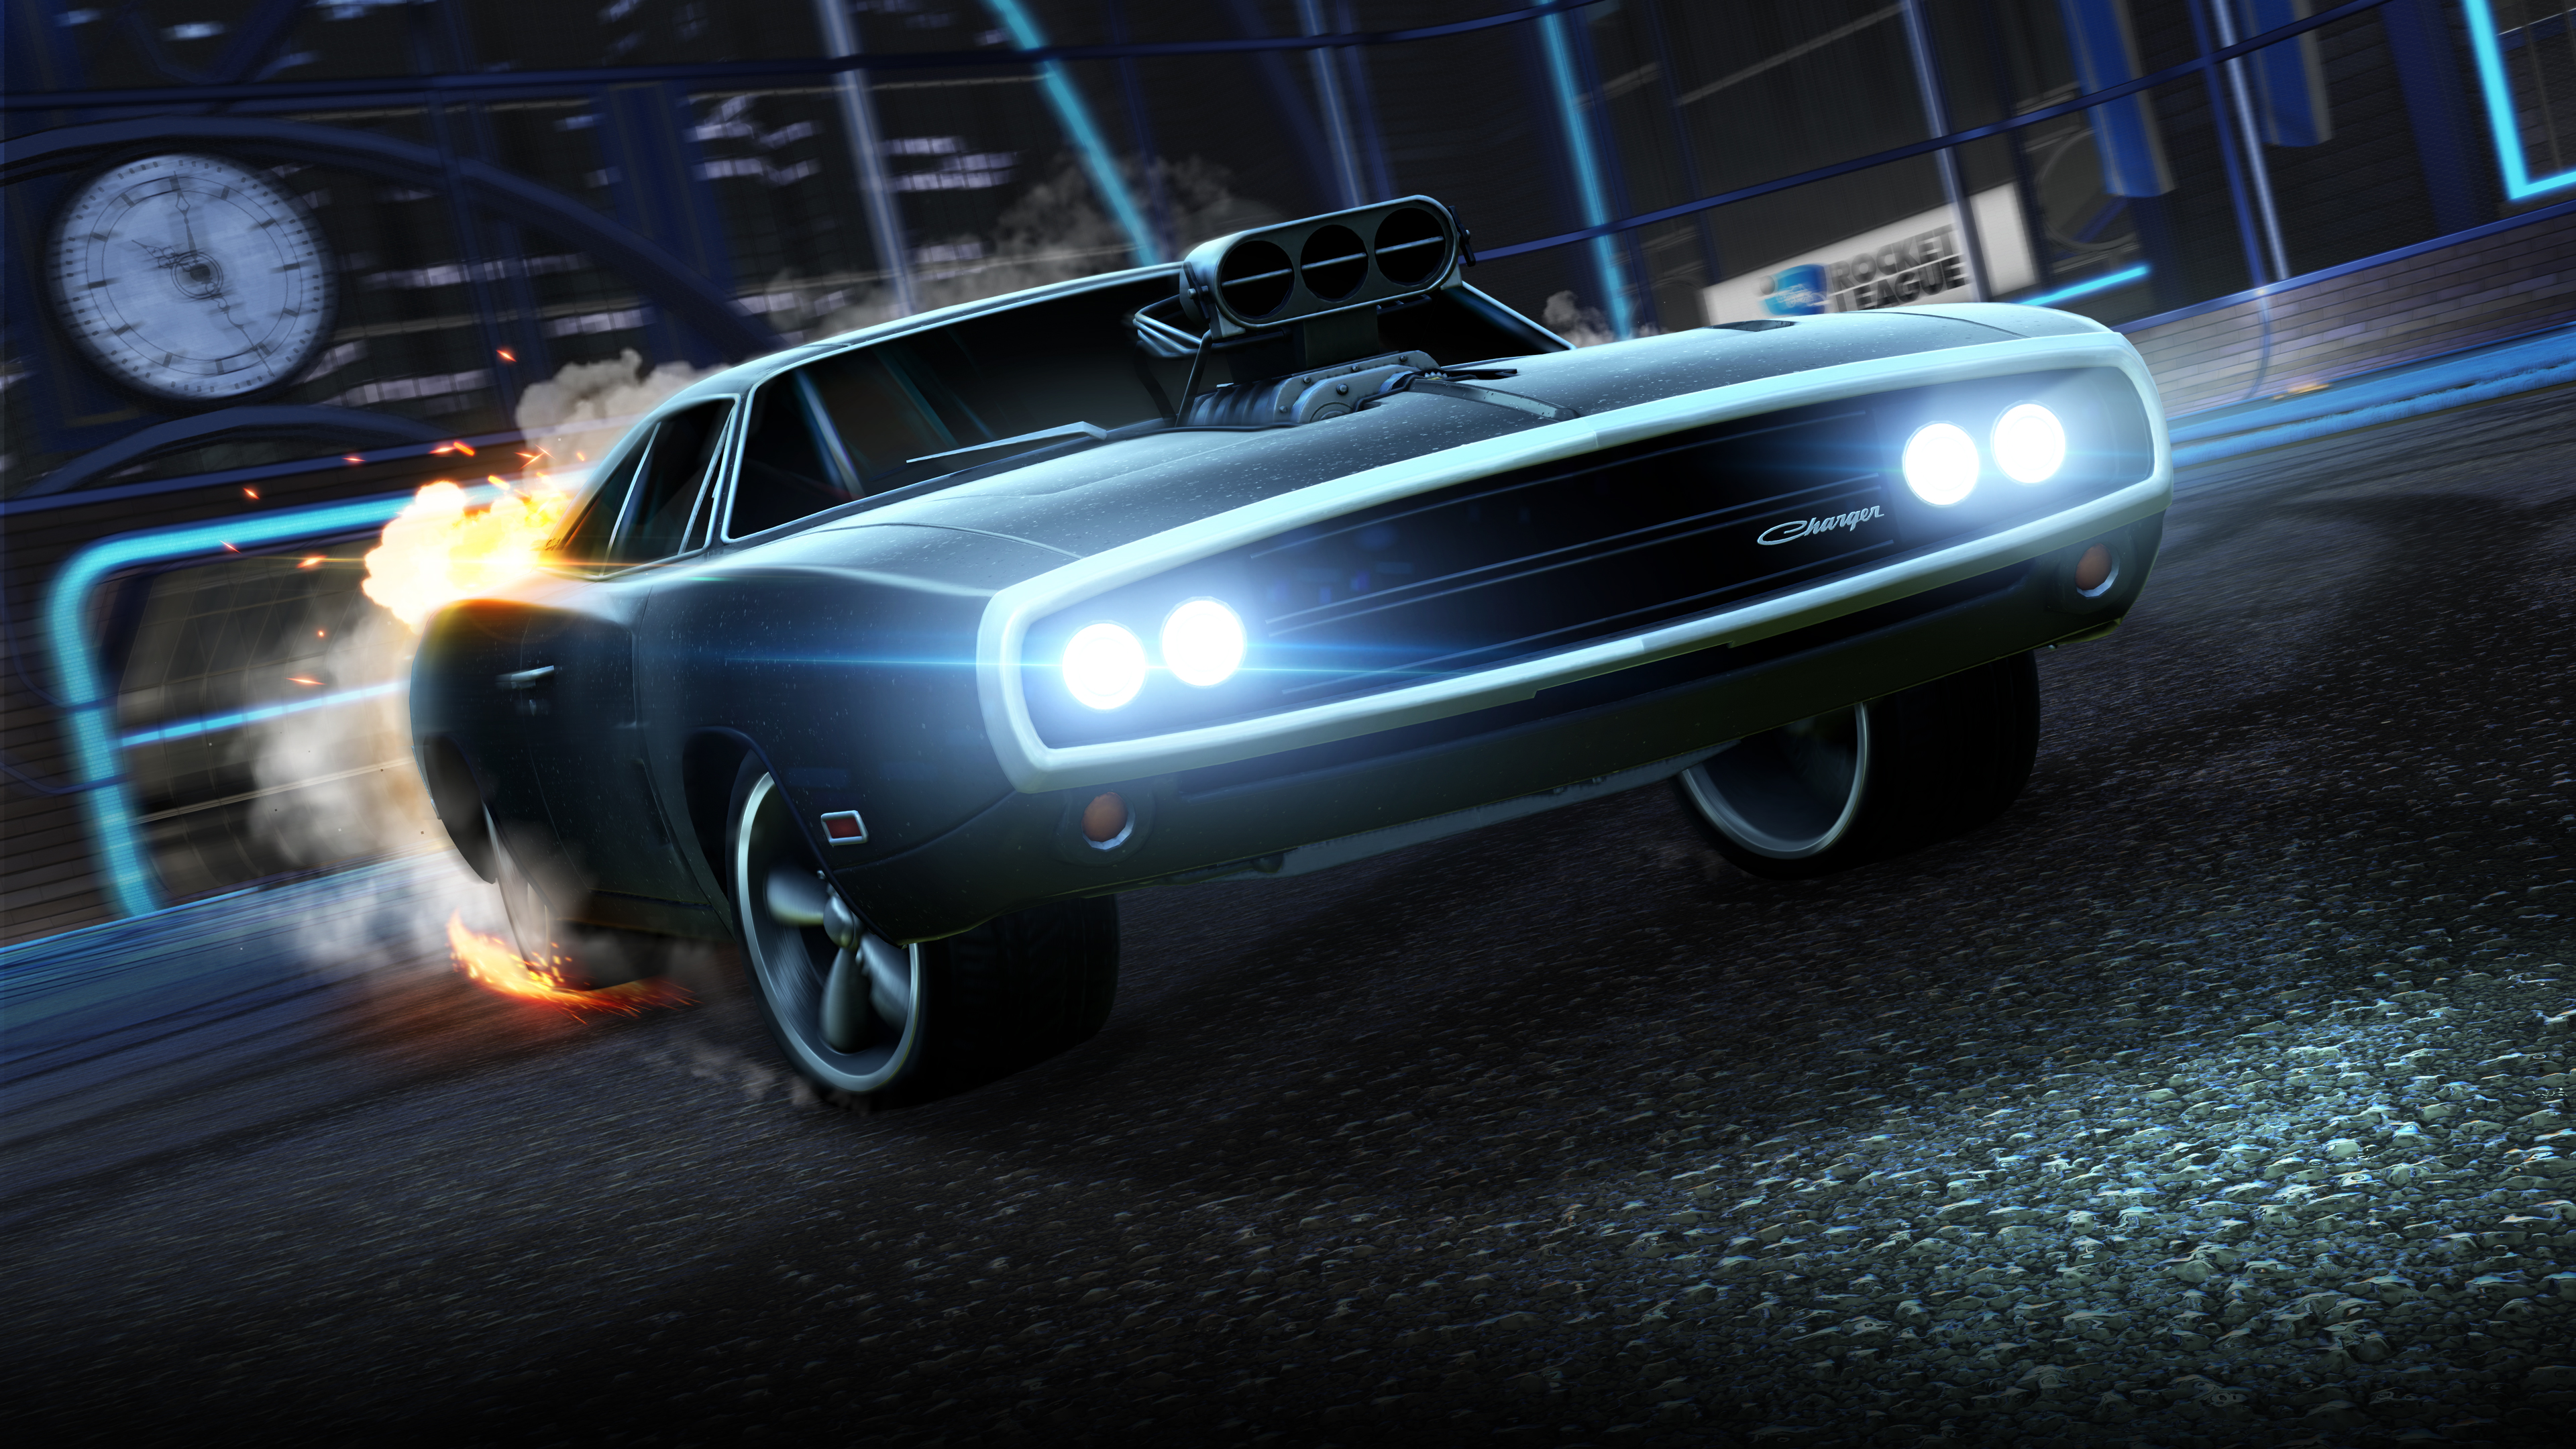 Rocket League S Dlc Cars Ranked From Best To Worst Pc Gamer